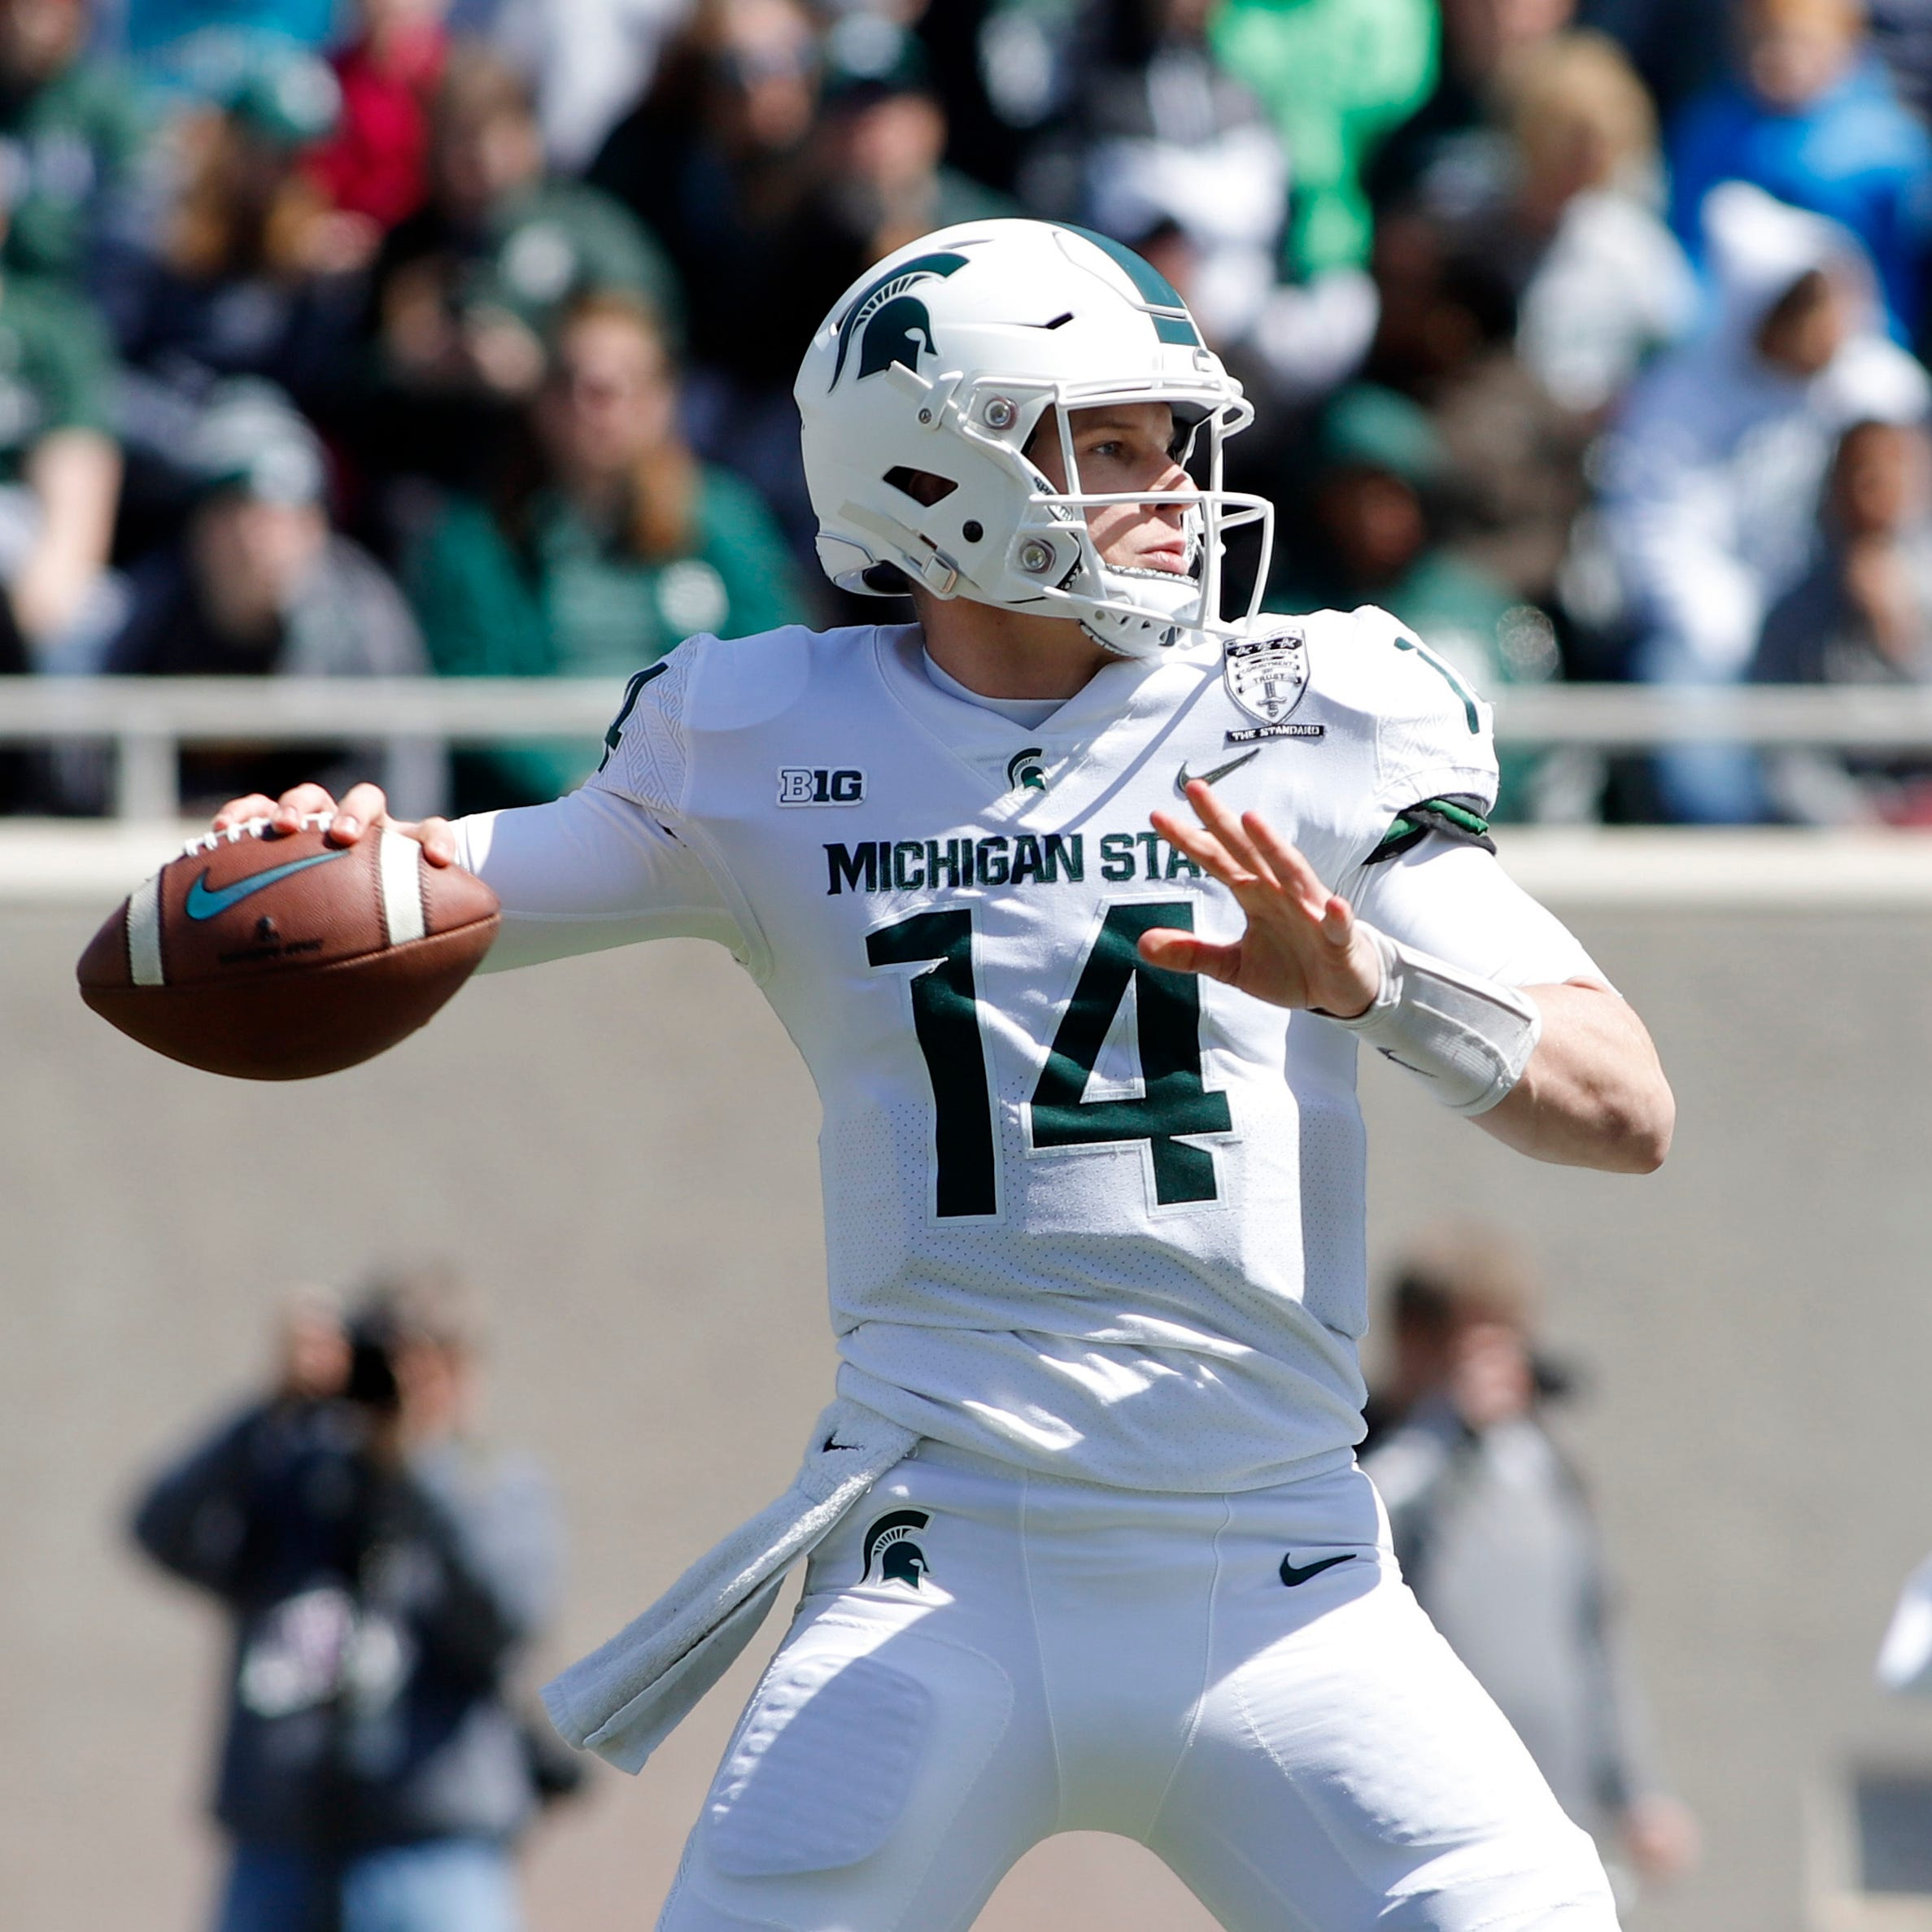 Mark Dantonio wants Michigan State QB Brian Lewerke to inspire, like he did in spring game